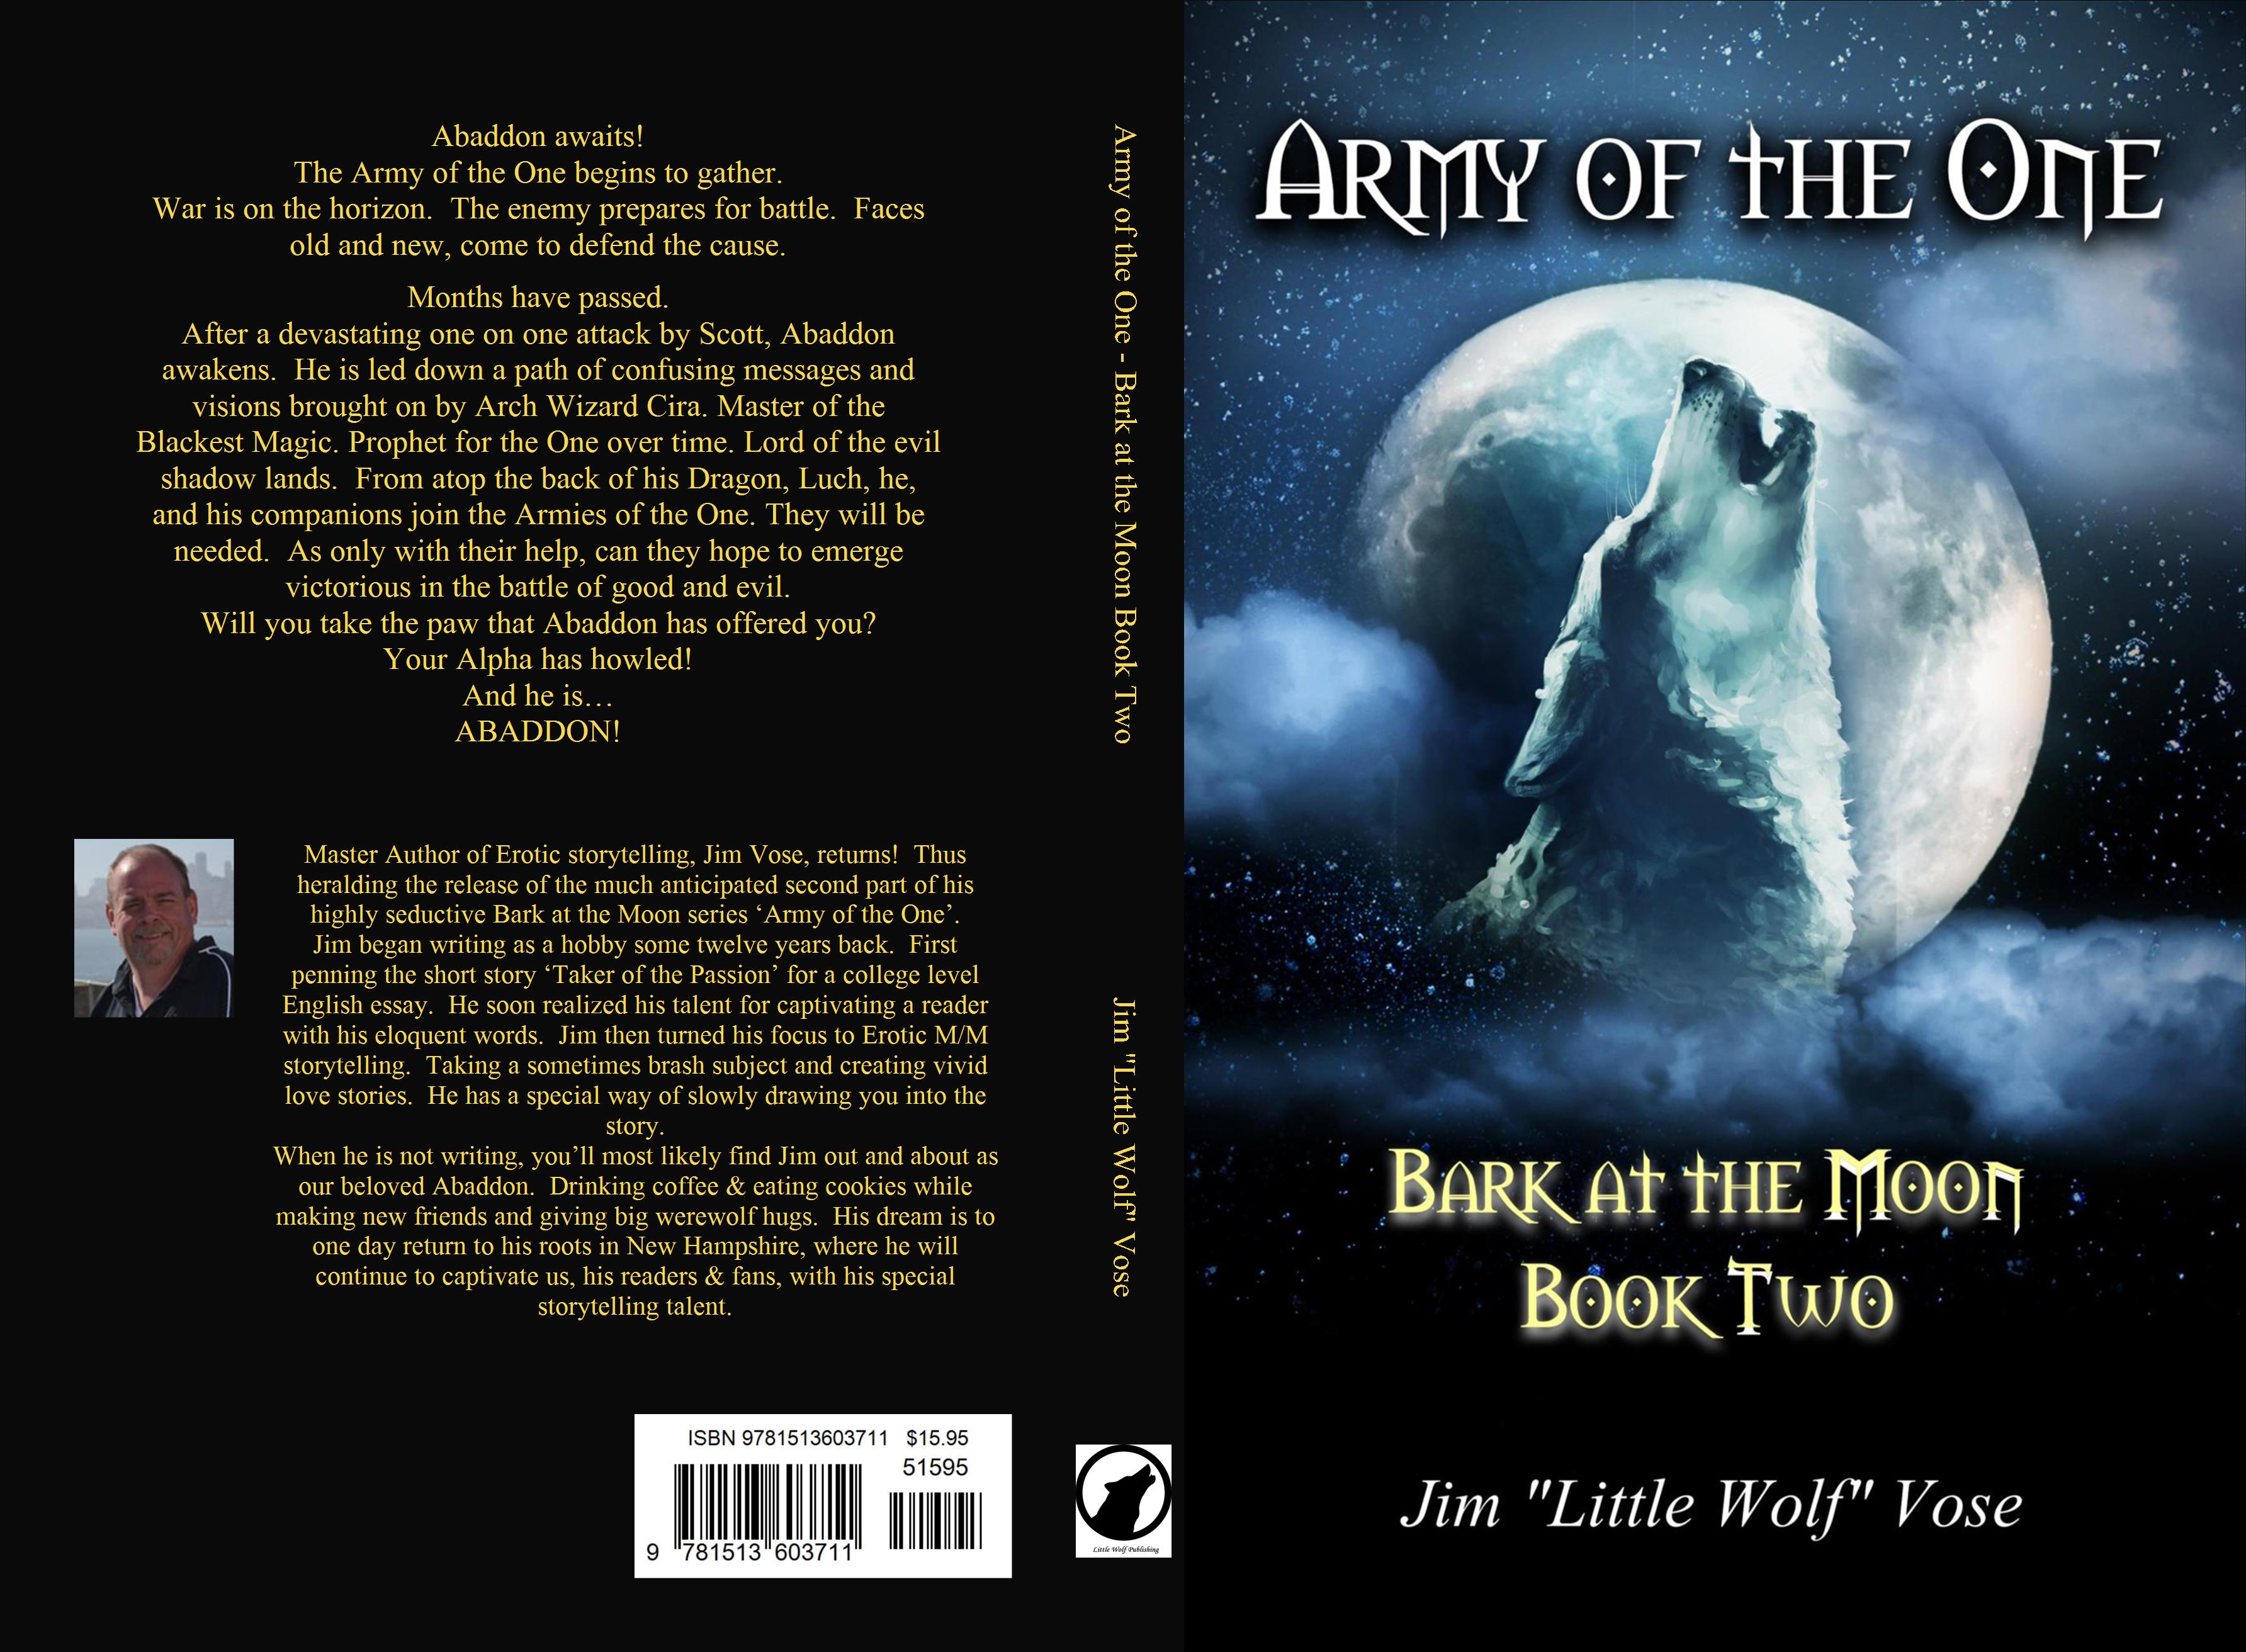 Army Of The One  Bark At The Moon Book Two Cover Image